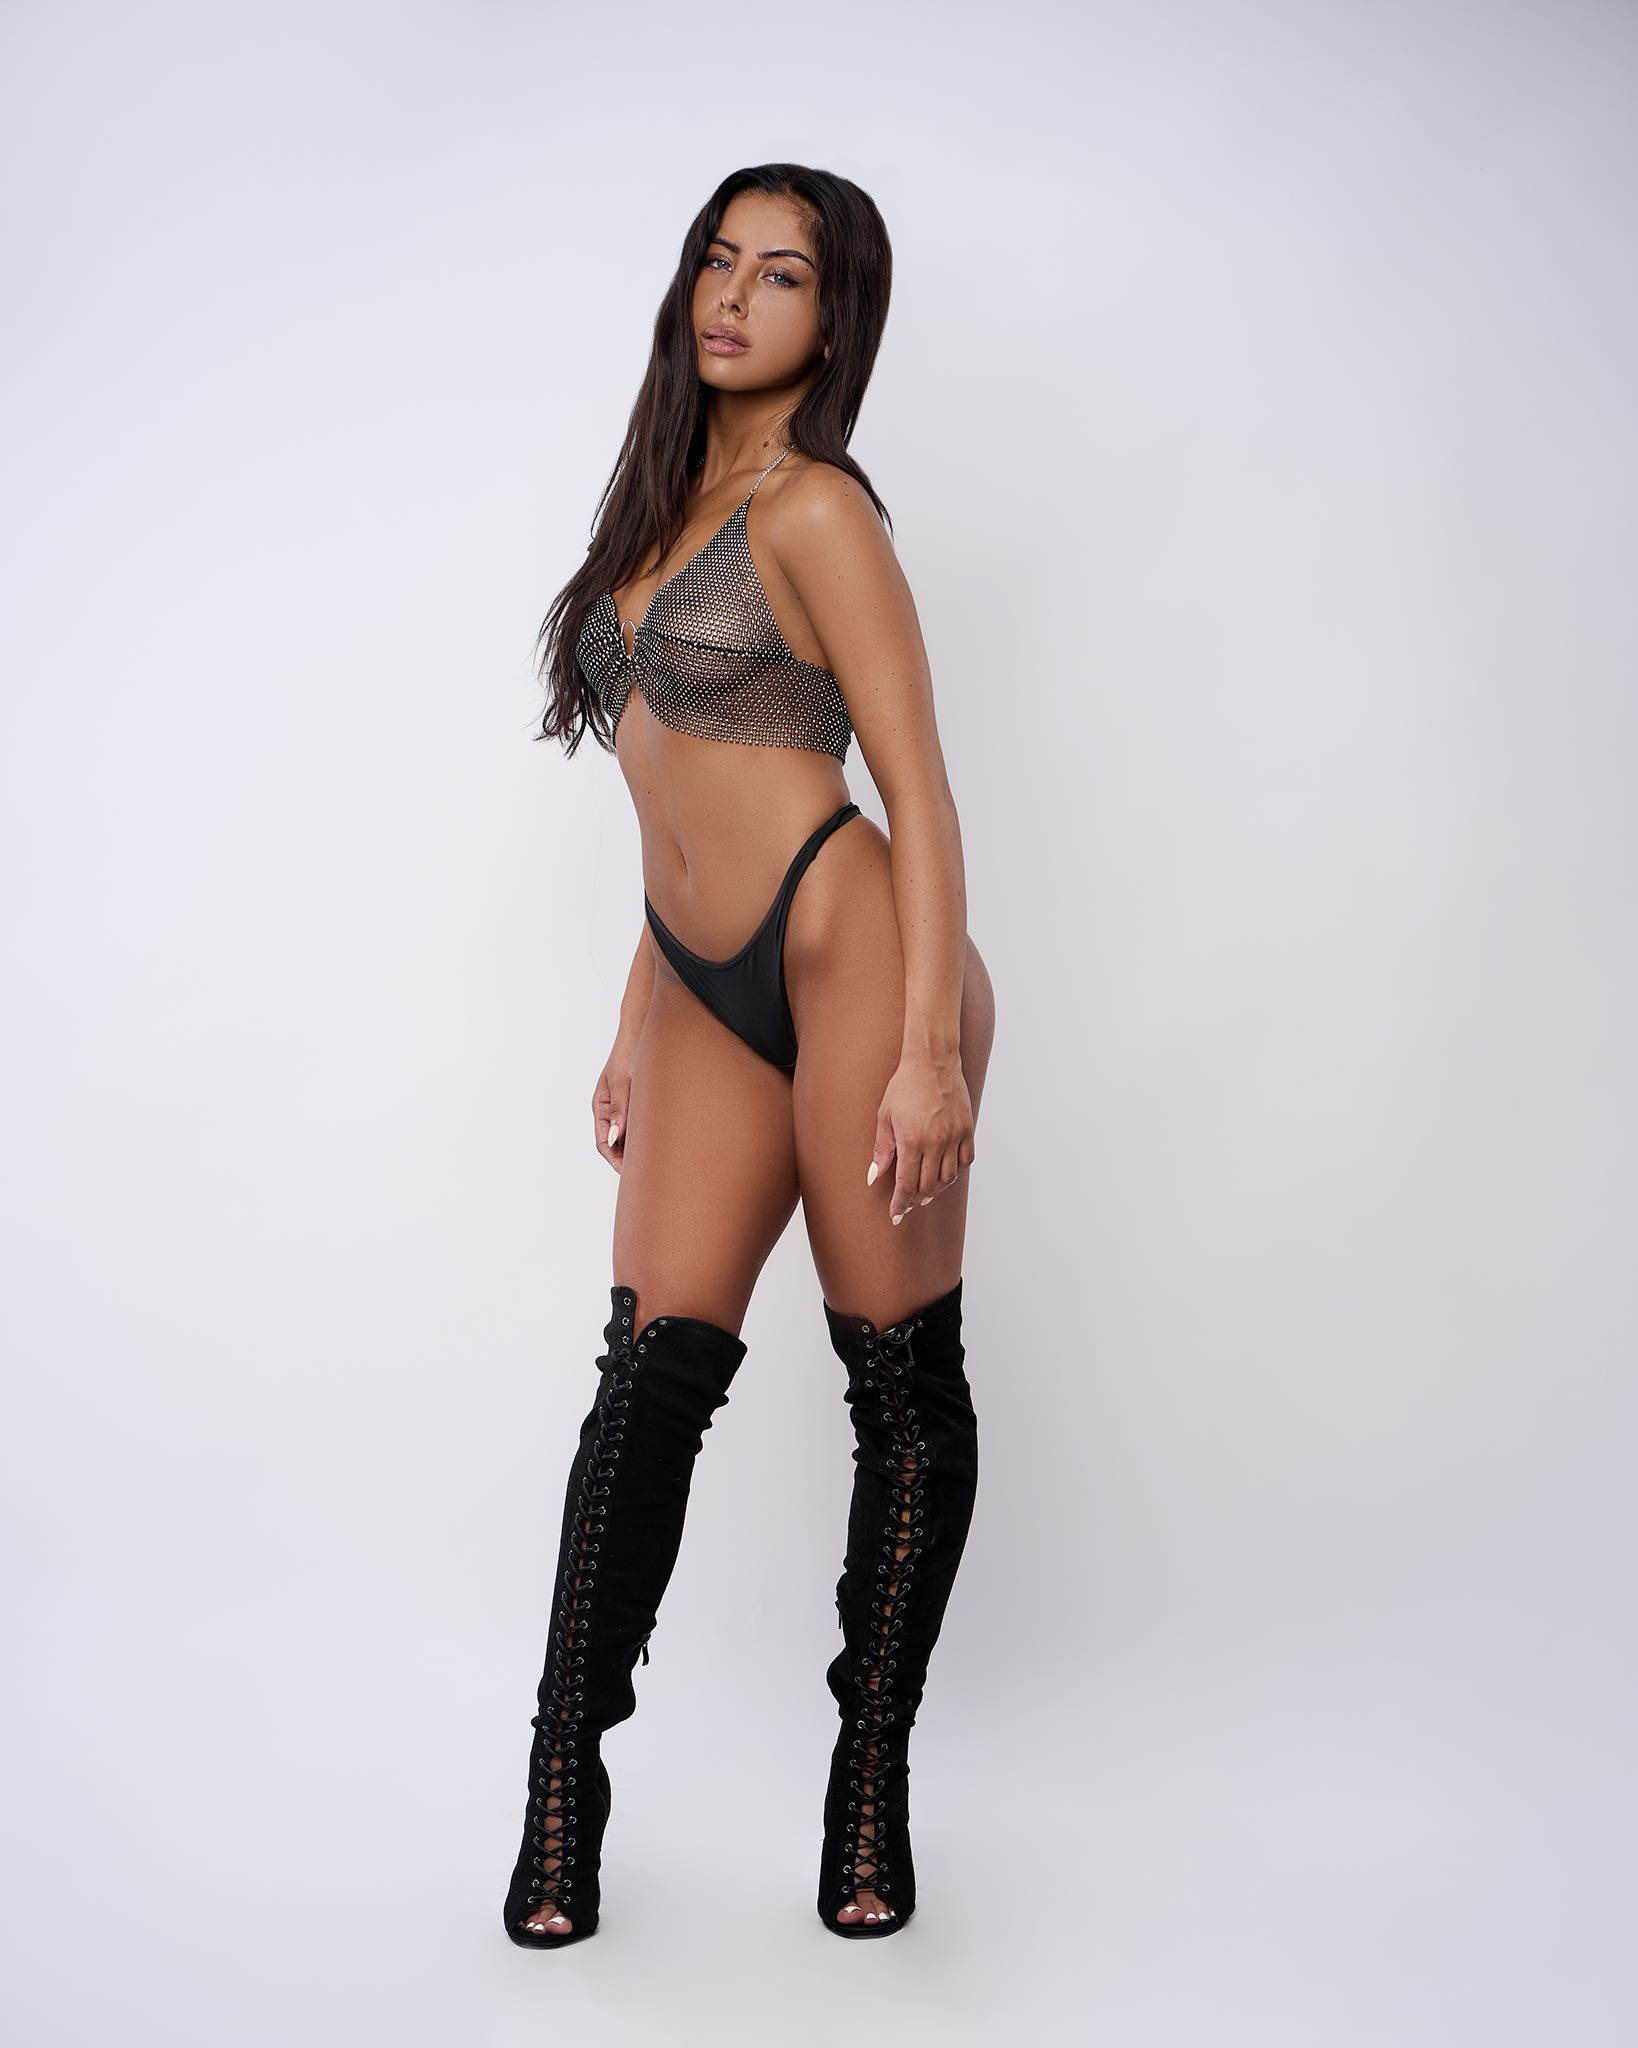 Chantè Els features as this week's LW Babe